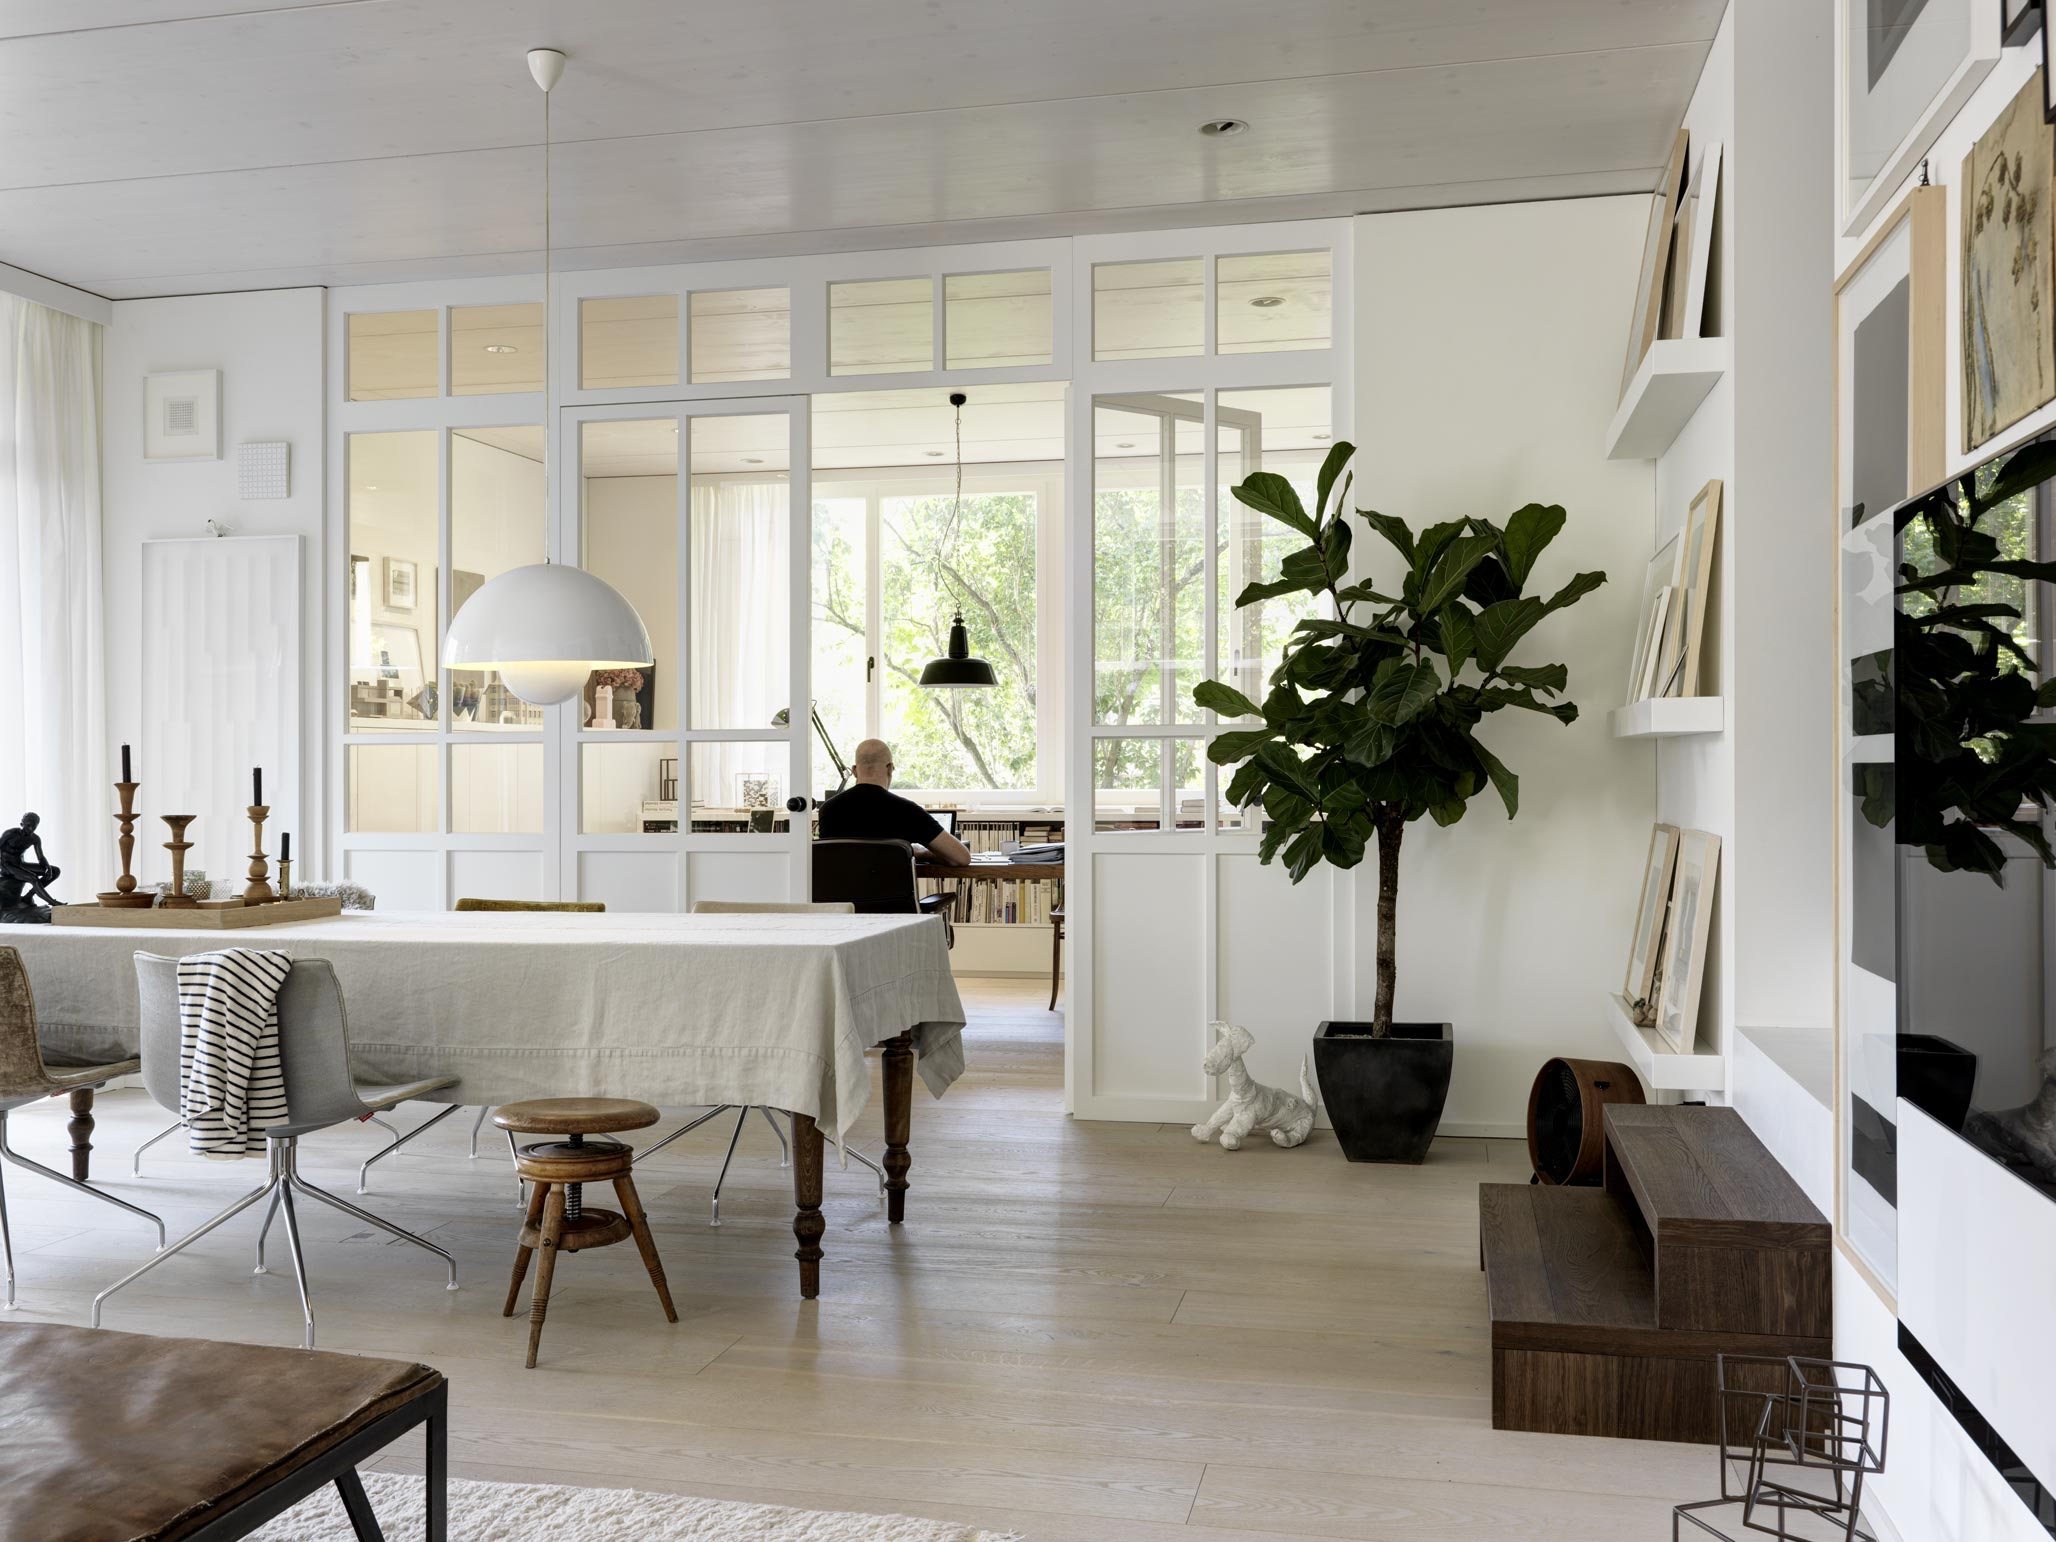 INTERIOR DESIGN: ALEXANDER WEGNER WORK: PHOTOGRAPHY. 02_Hest_0272_3 ·  03_Hest_0292_D